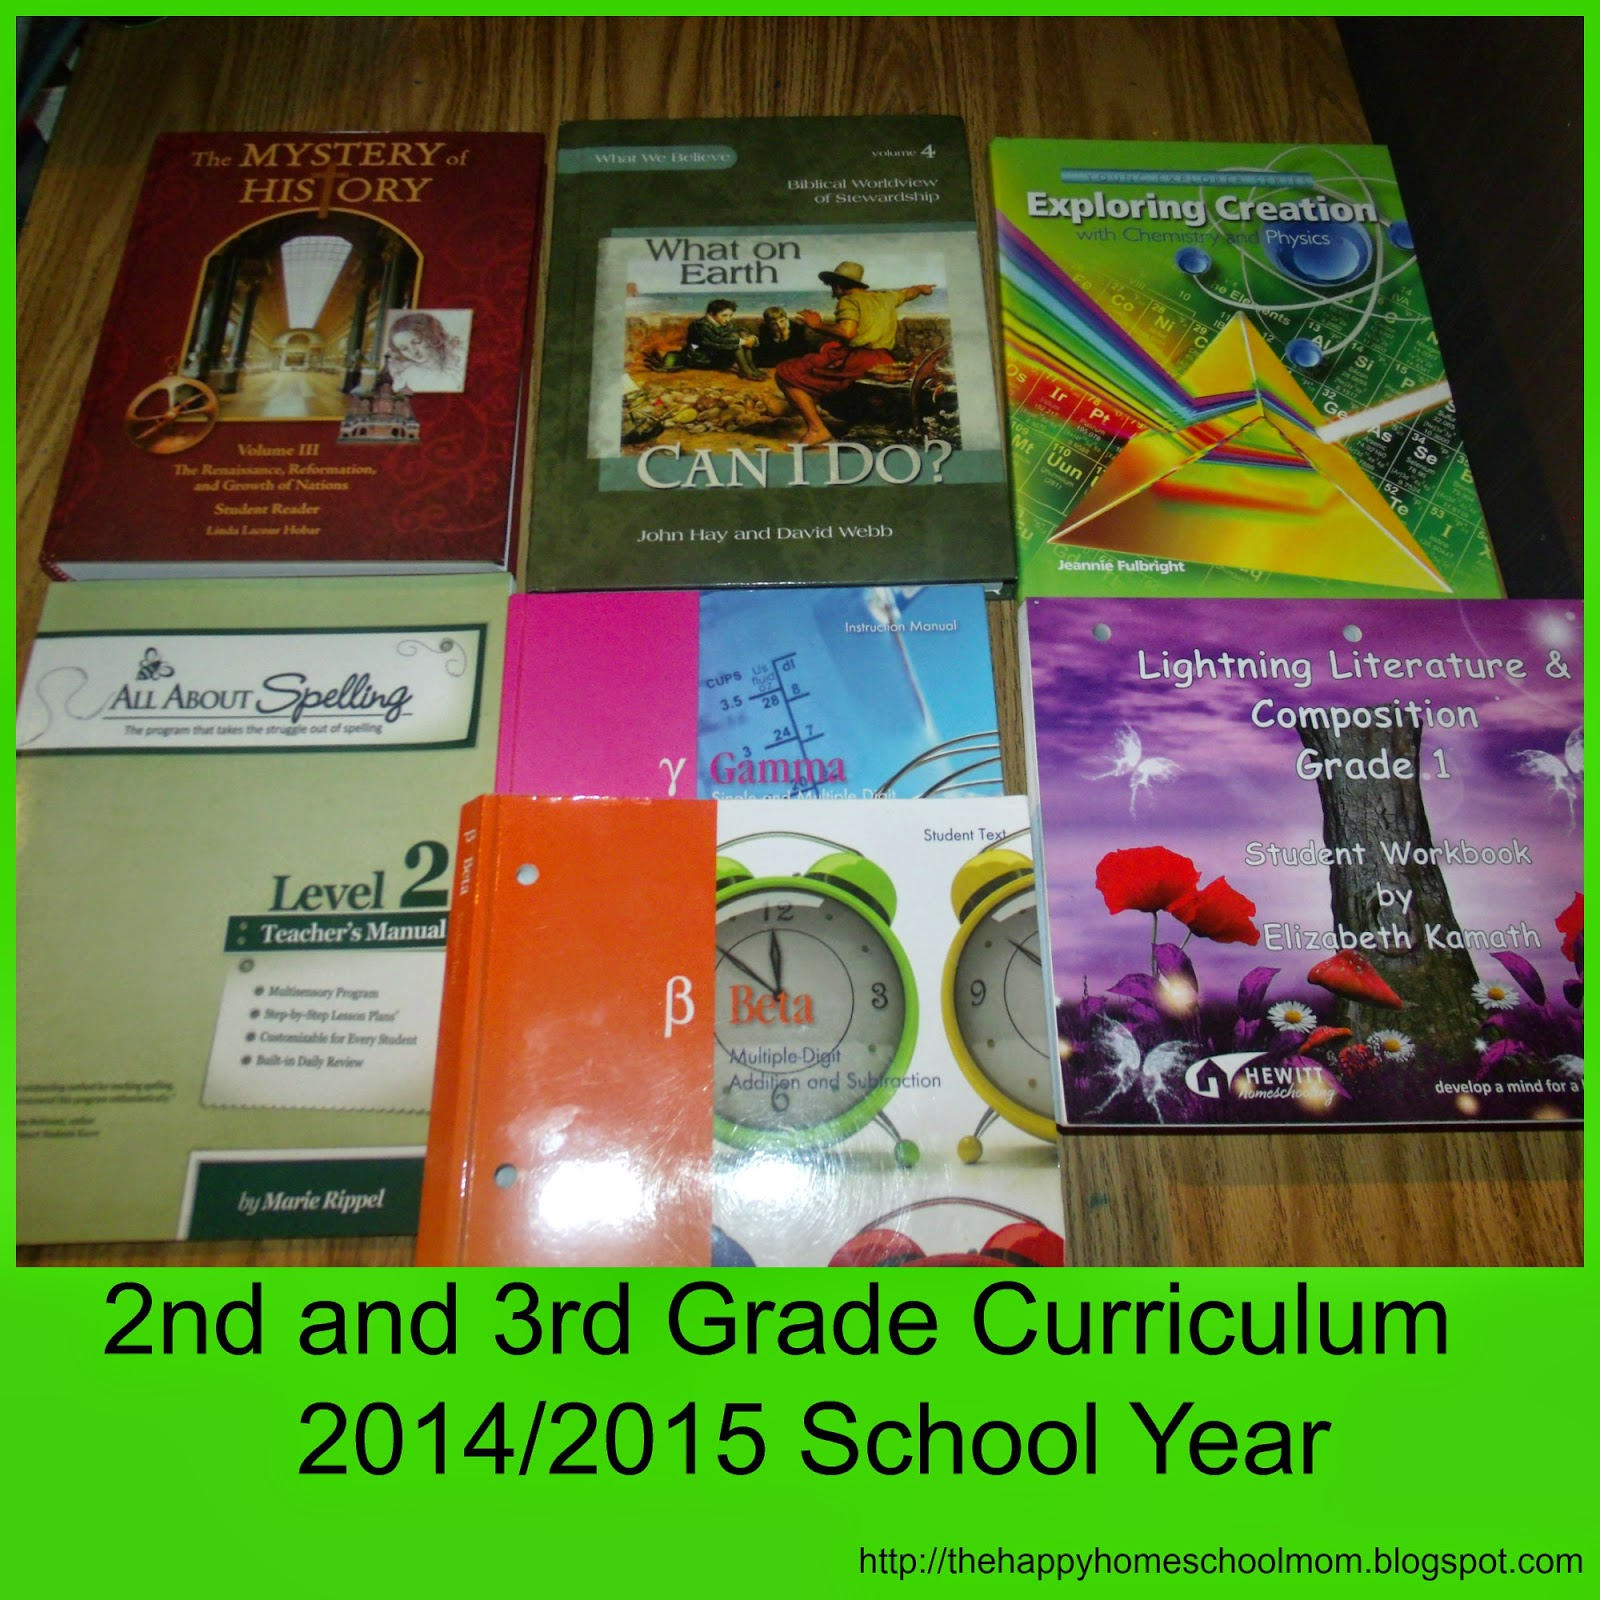 The Happy Homeschool Mom 2nd And 3rd Grade Curriculum Choices For The School Year